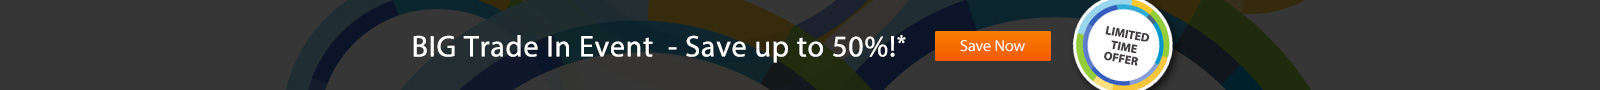 BIG Trade In Event - Save up to 50%